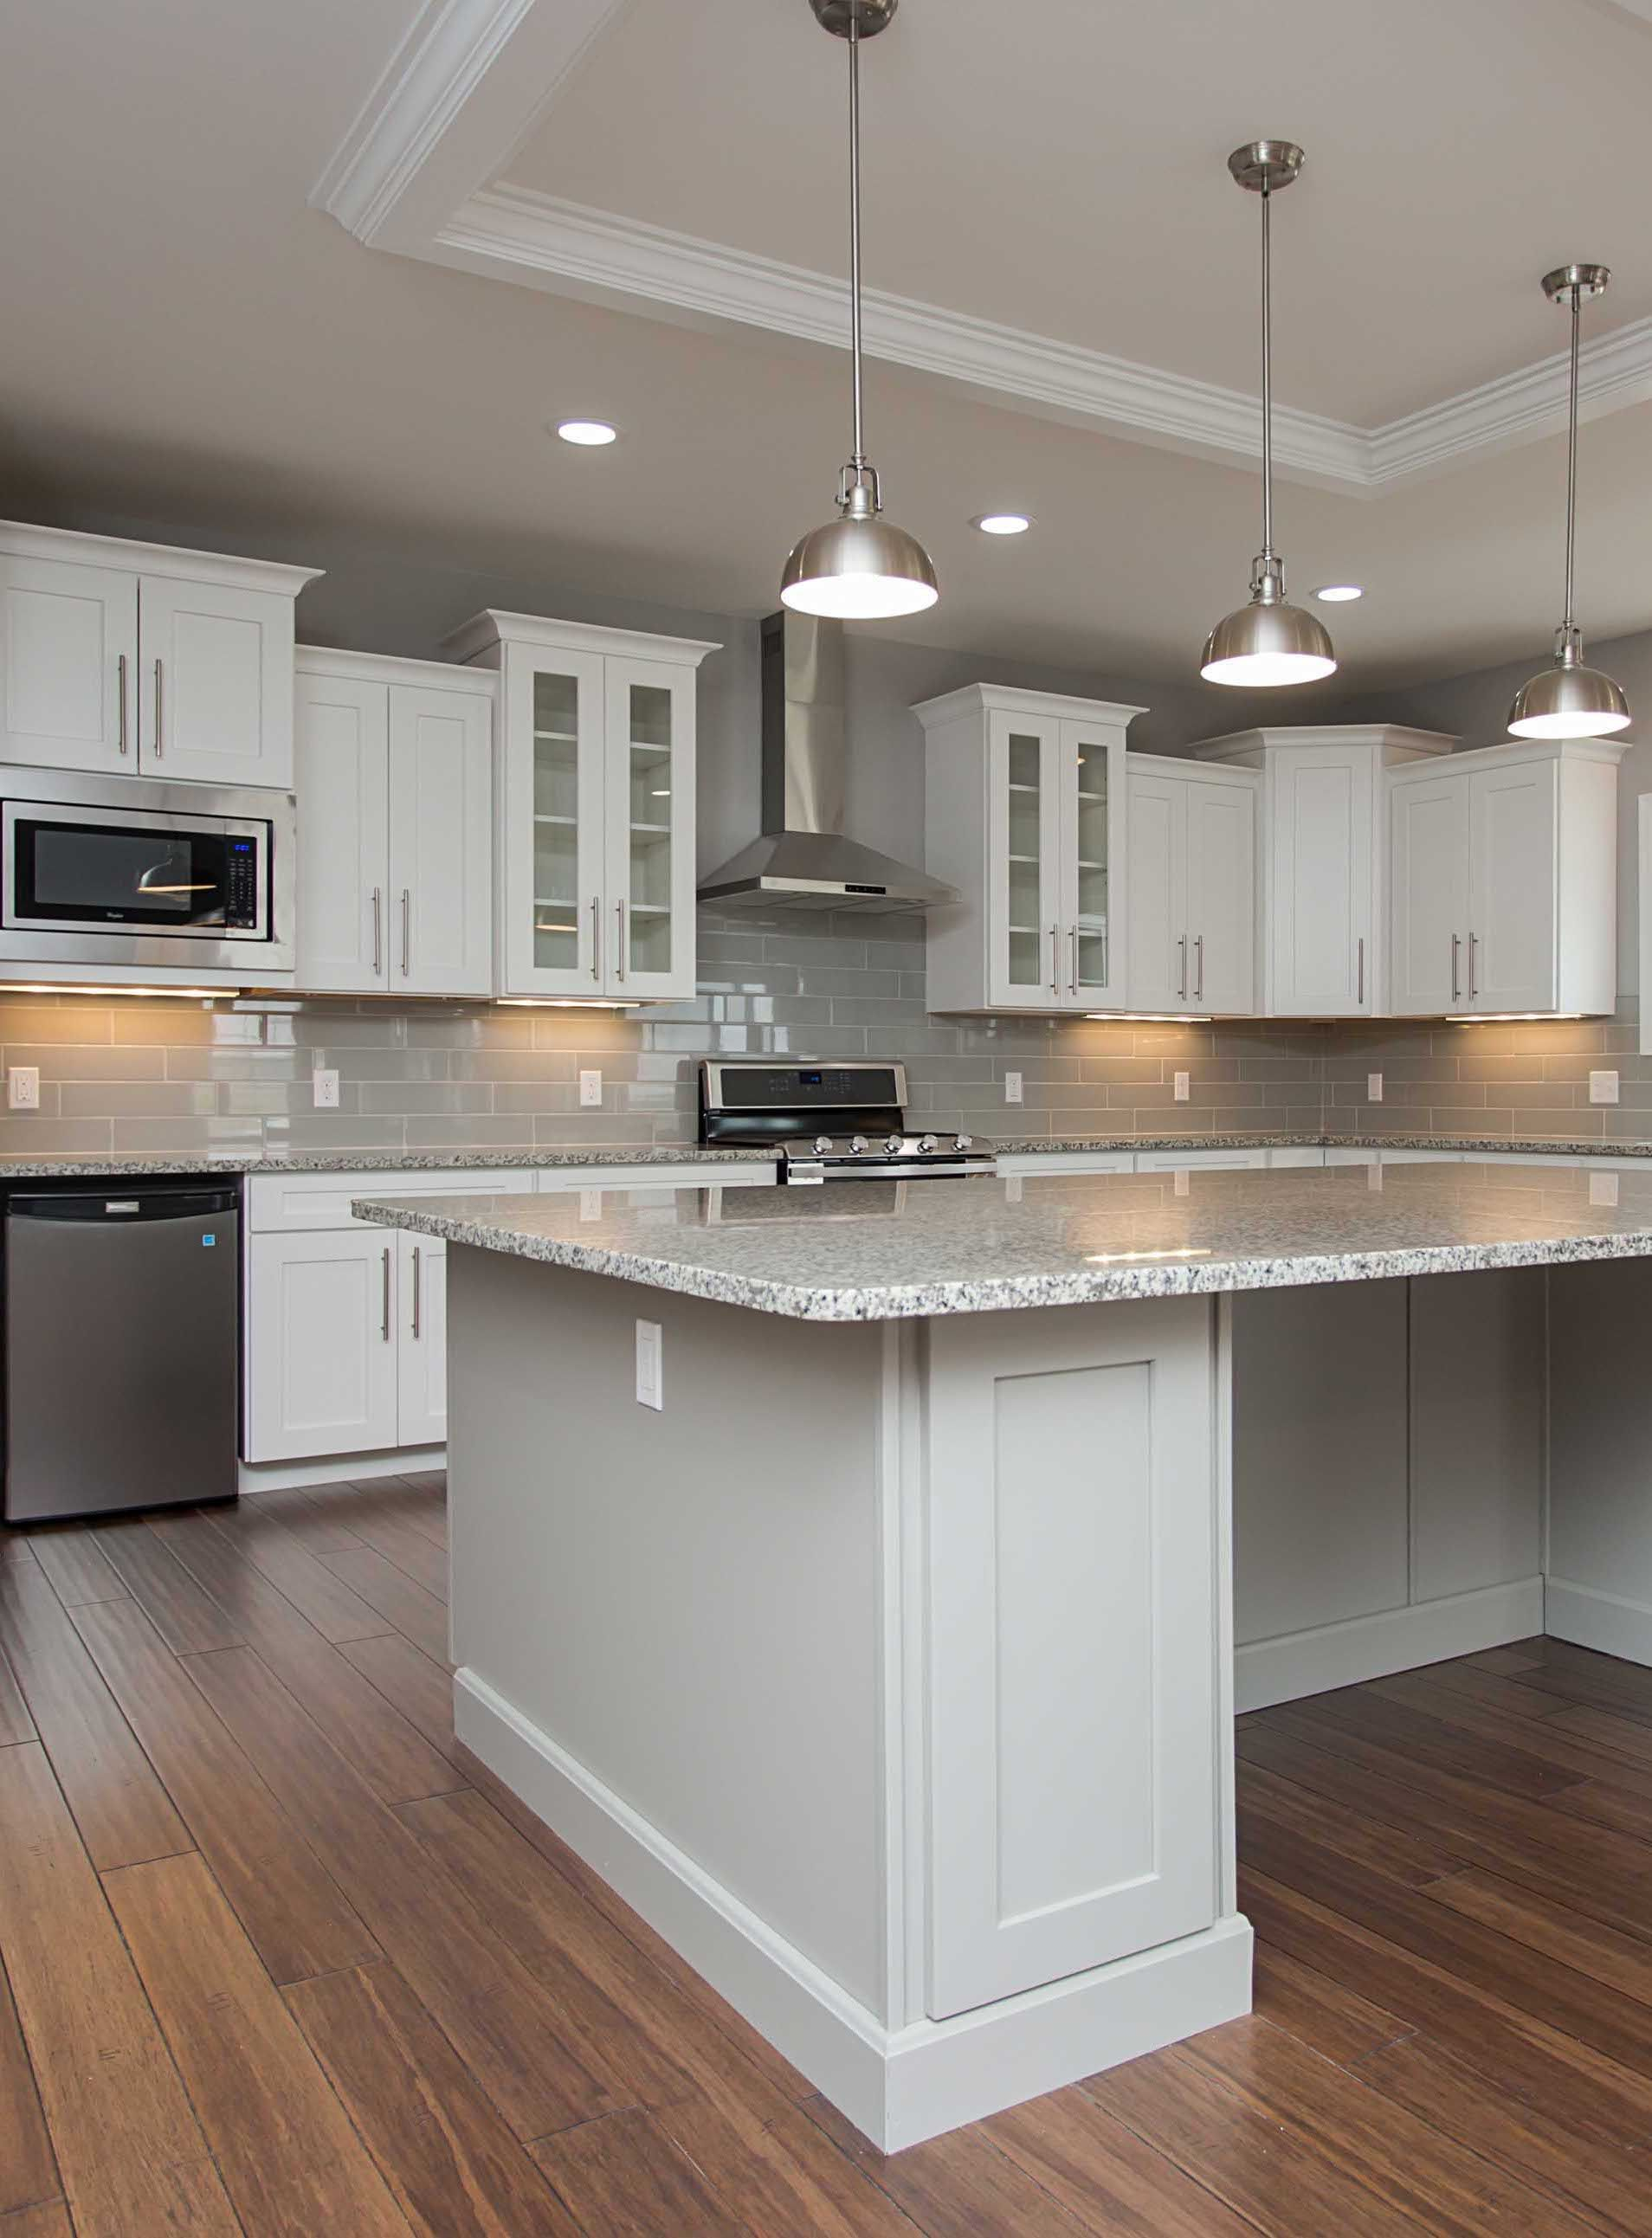 Plenty For The Eye To See In This Stunning Kitchen Two Tone Cabinets Staggere Kitchen Cabinets Height Glass Kitchen Cabinet Doors Staggered Kitchen Cabinets